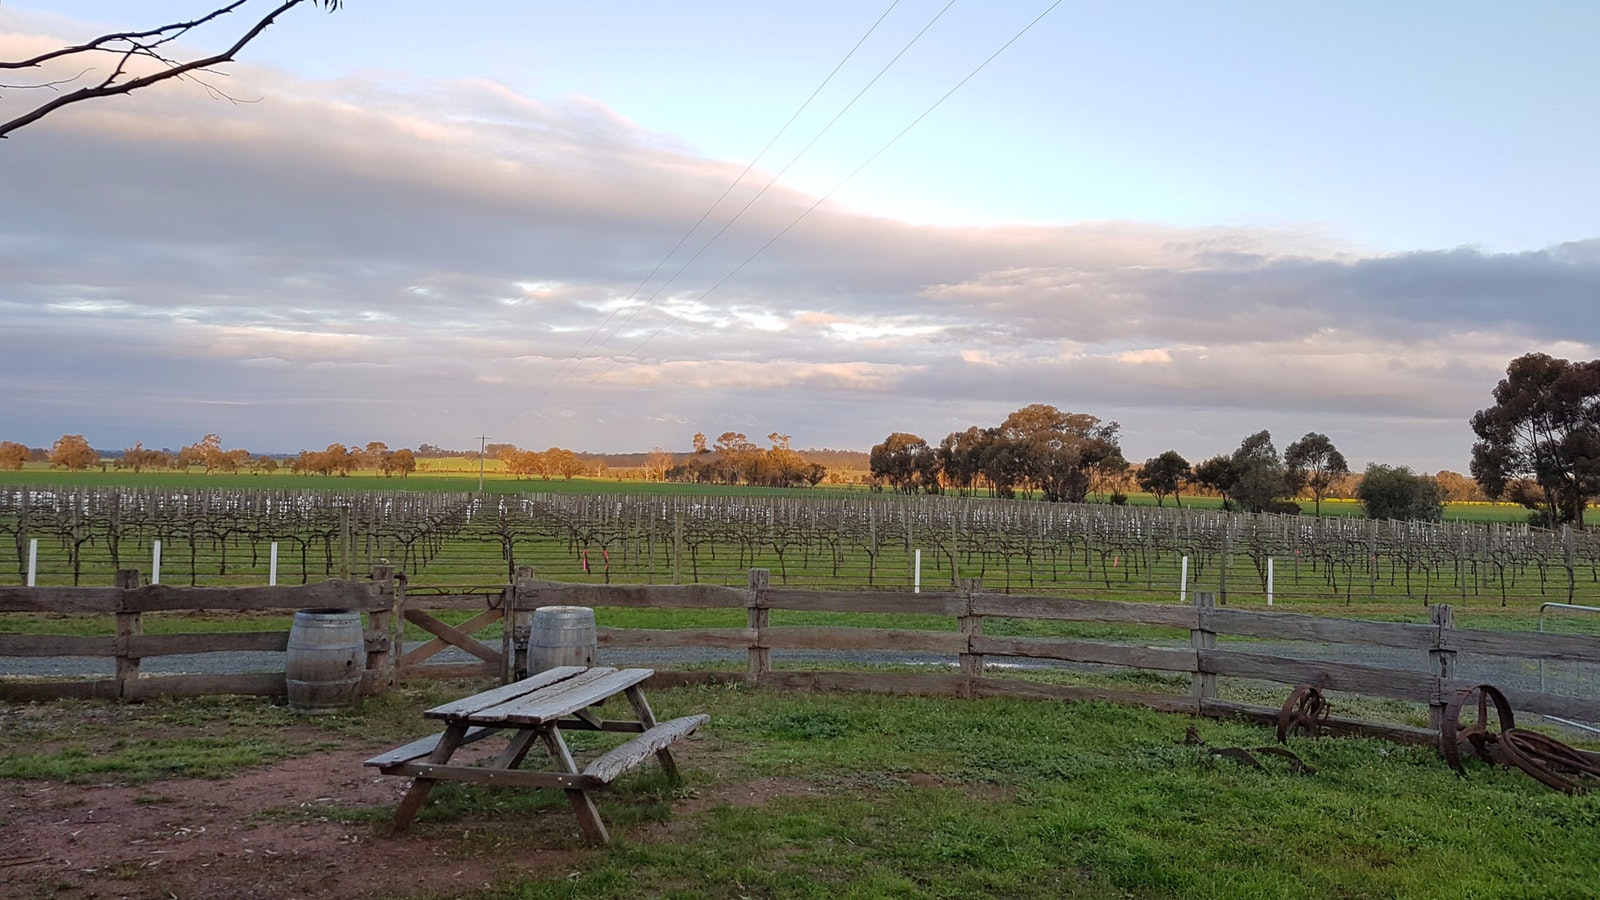 Gorgeous sunsets at the Shiraz Republic. This is the view from our cellar door.